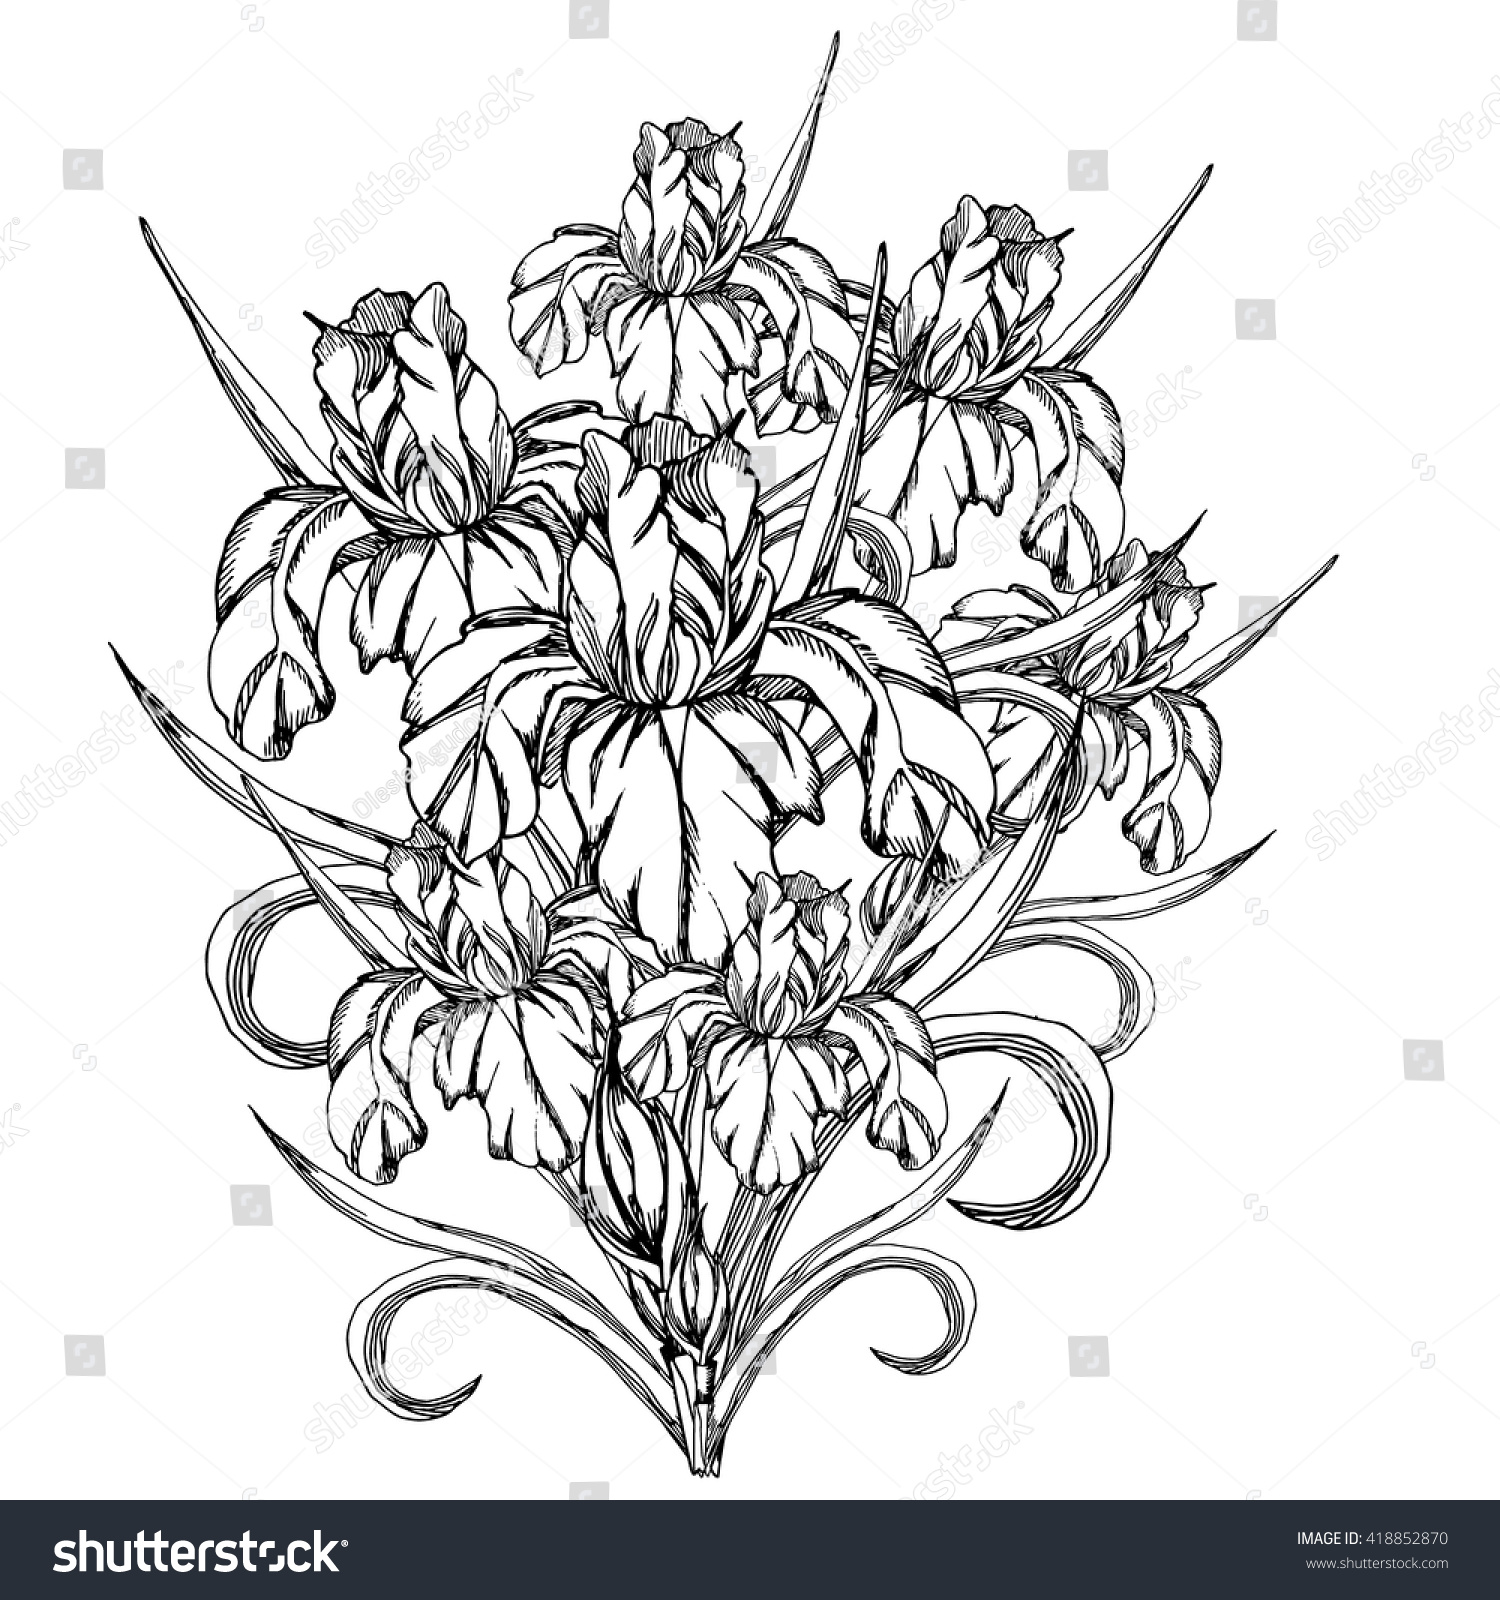 Royalty Free Sketch Flowerctor Decorative Trace 418852870 Stock